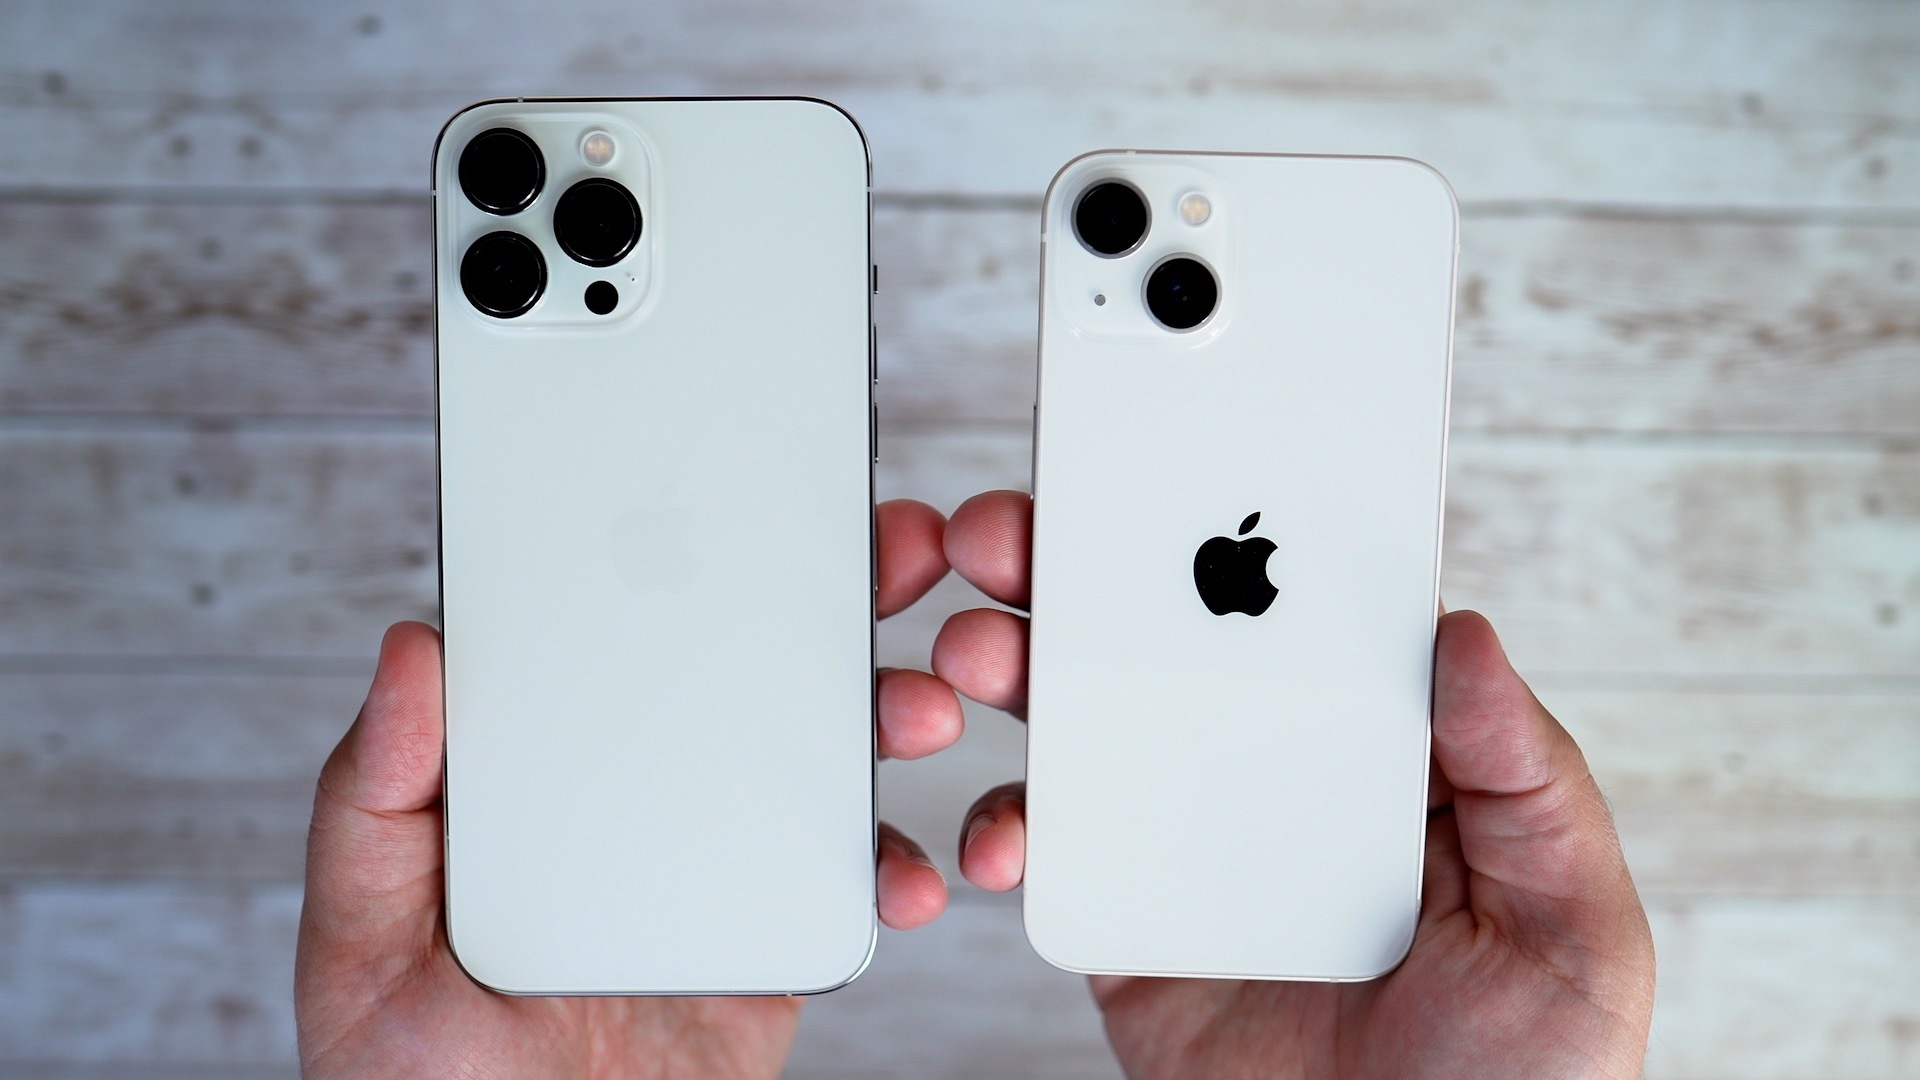 iphone 13 and iphone 13 pro max